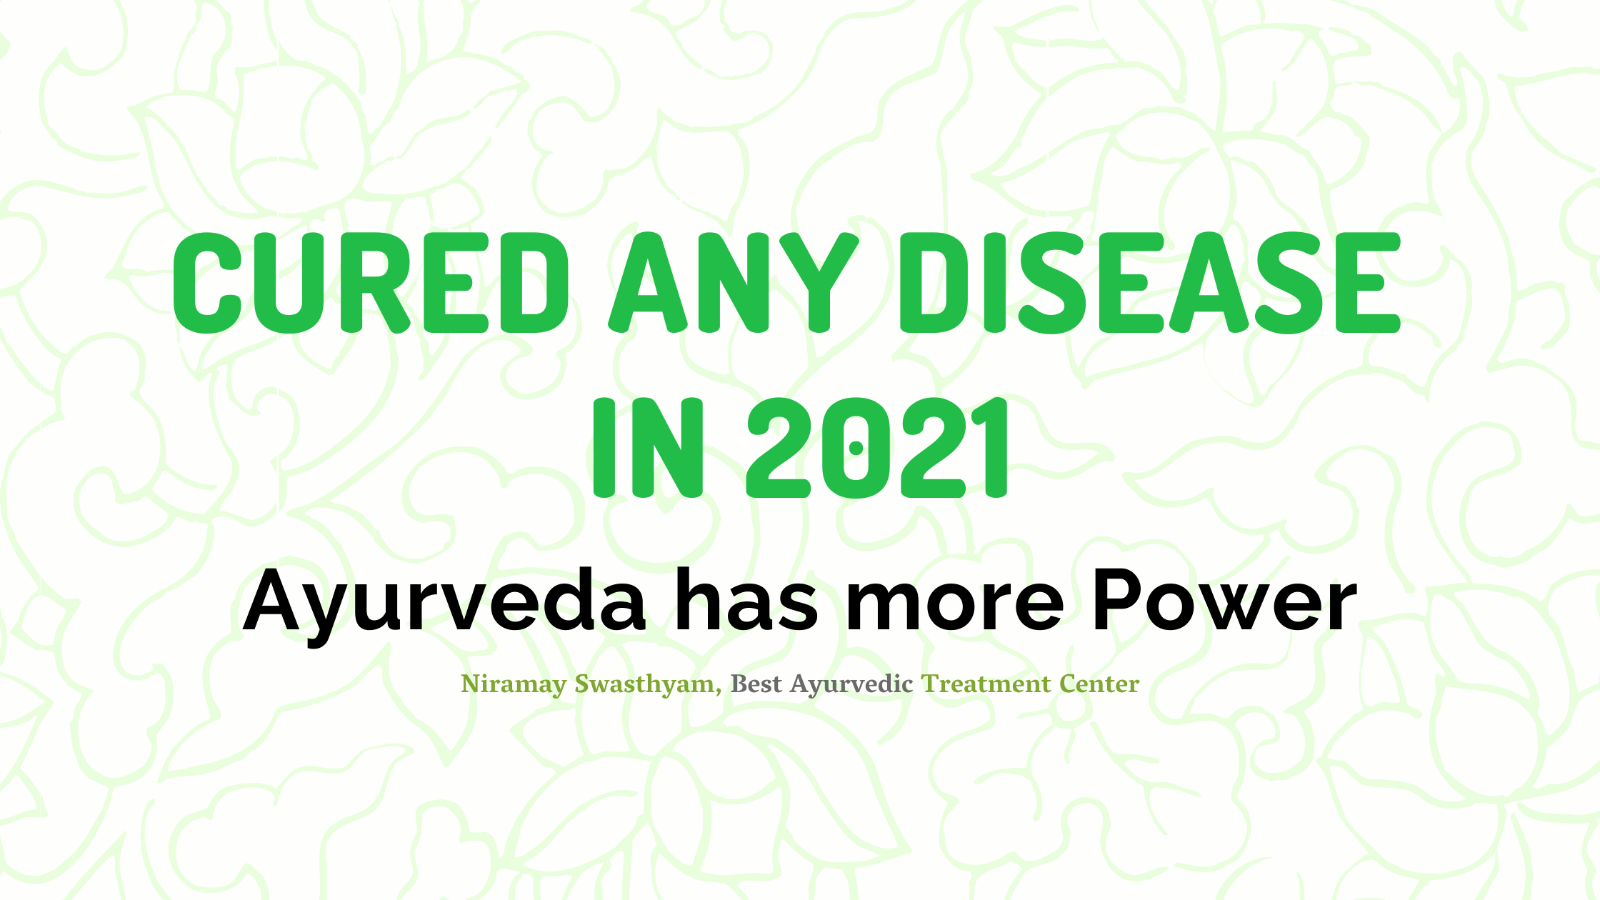 Ayurveda has more Power to cured any disease in 2021